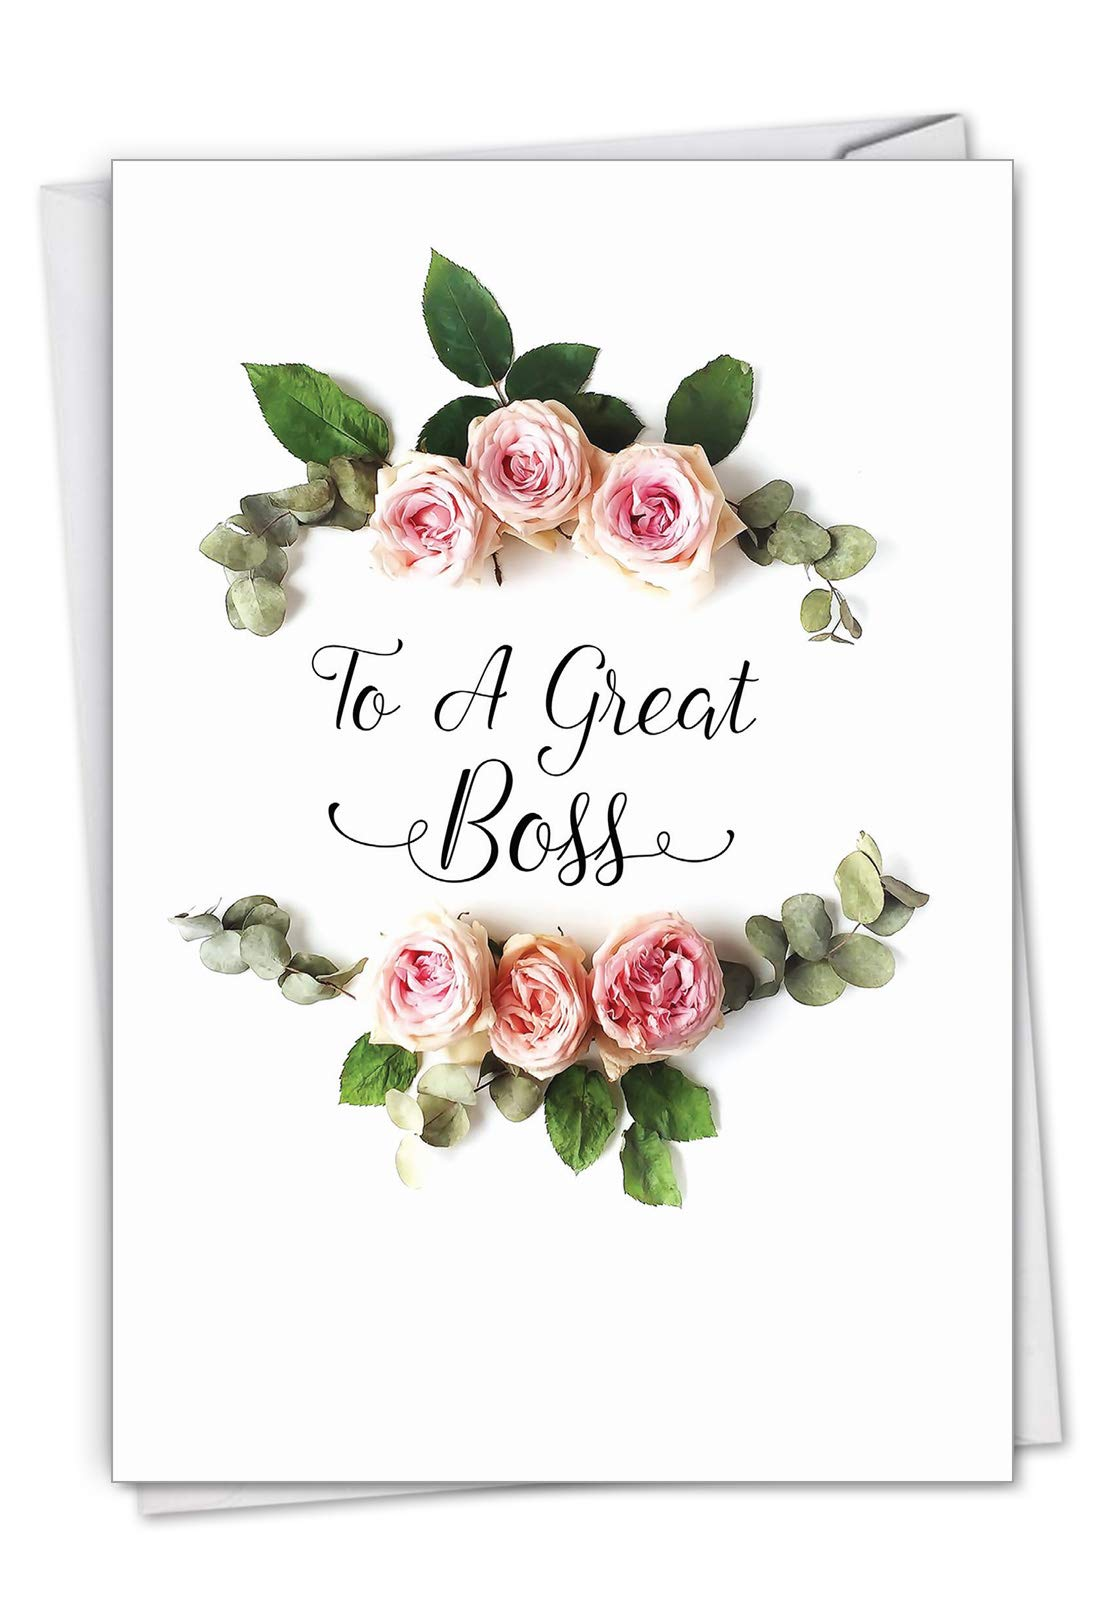 The Best Card Elegant Flowers - Boss's Day Greeting Card (4.63 x 6.75 Inch) With a flowery sentiment with appreciation for the boss C4175ABOG